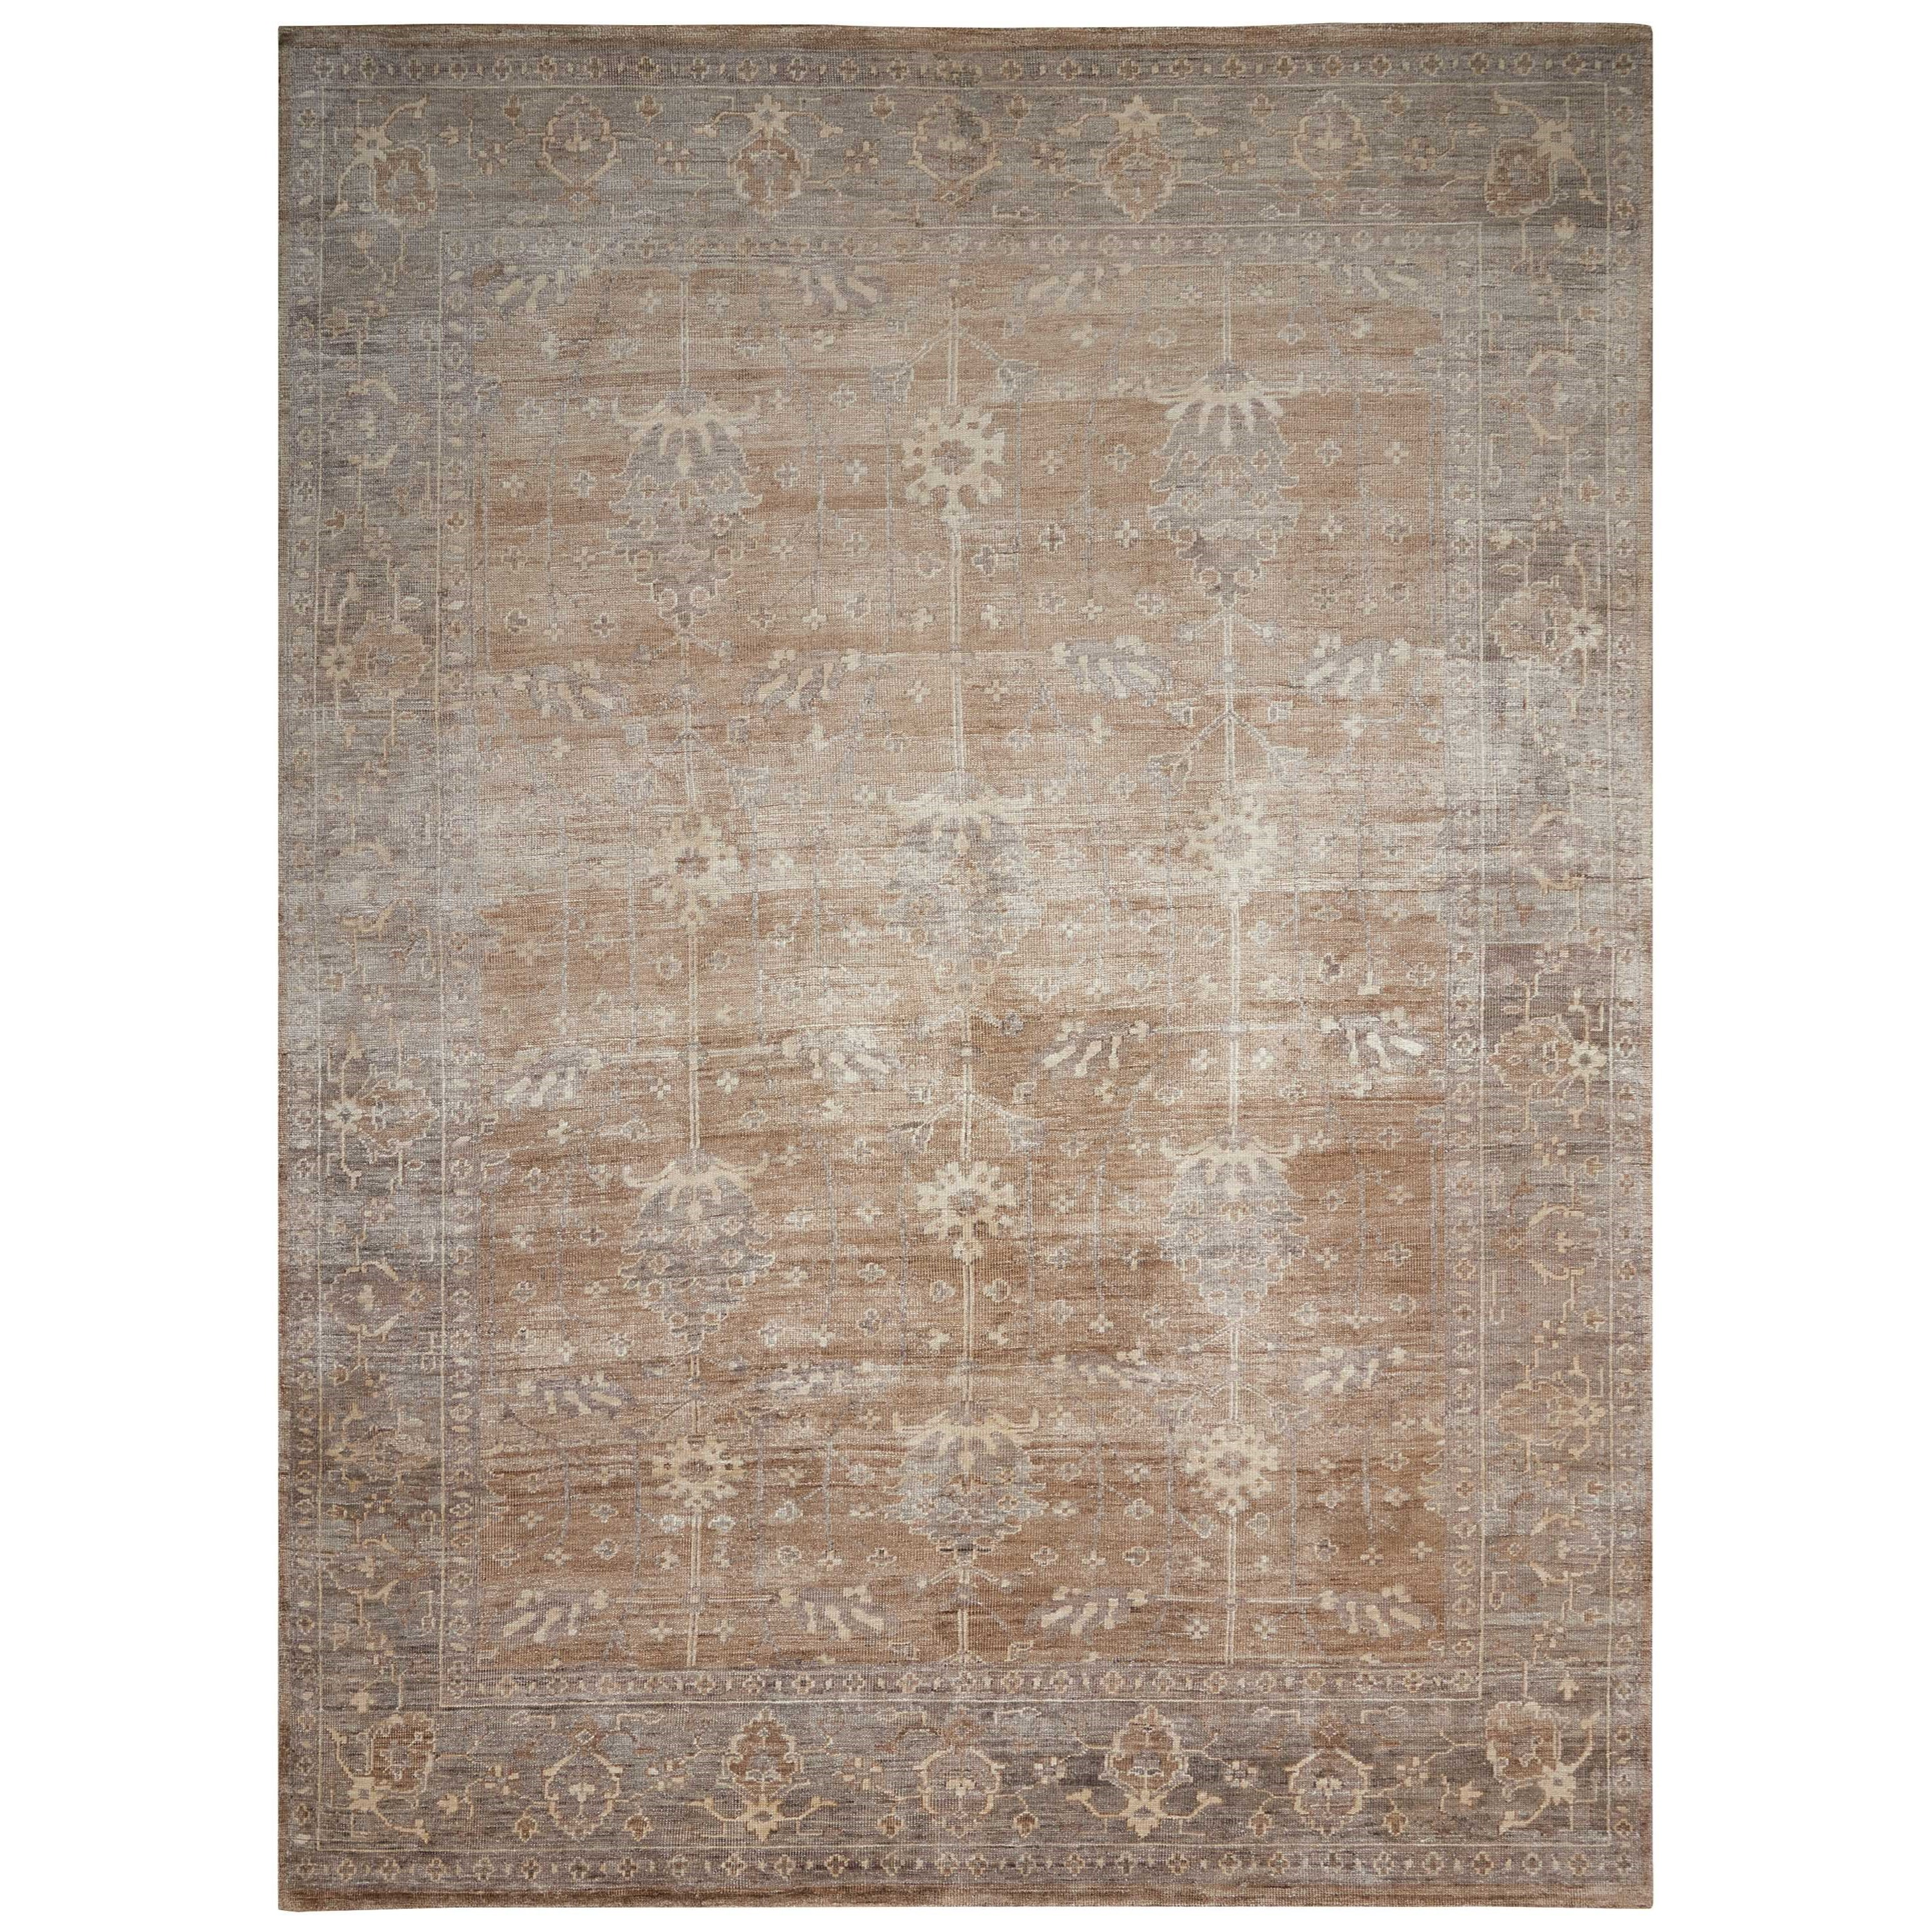 "Aldora1 9'9"" X 13'9"" Pewter Rug by Nourison at Home Collections Furniture"